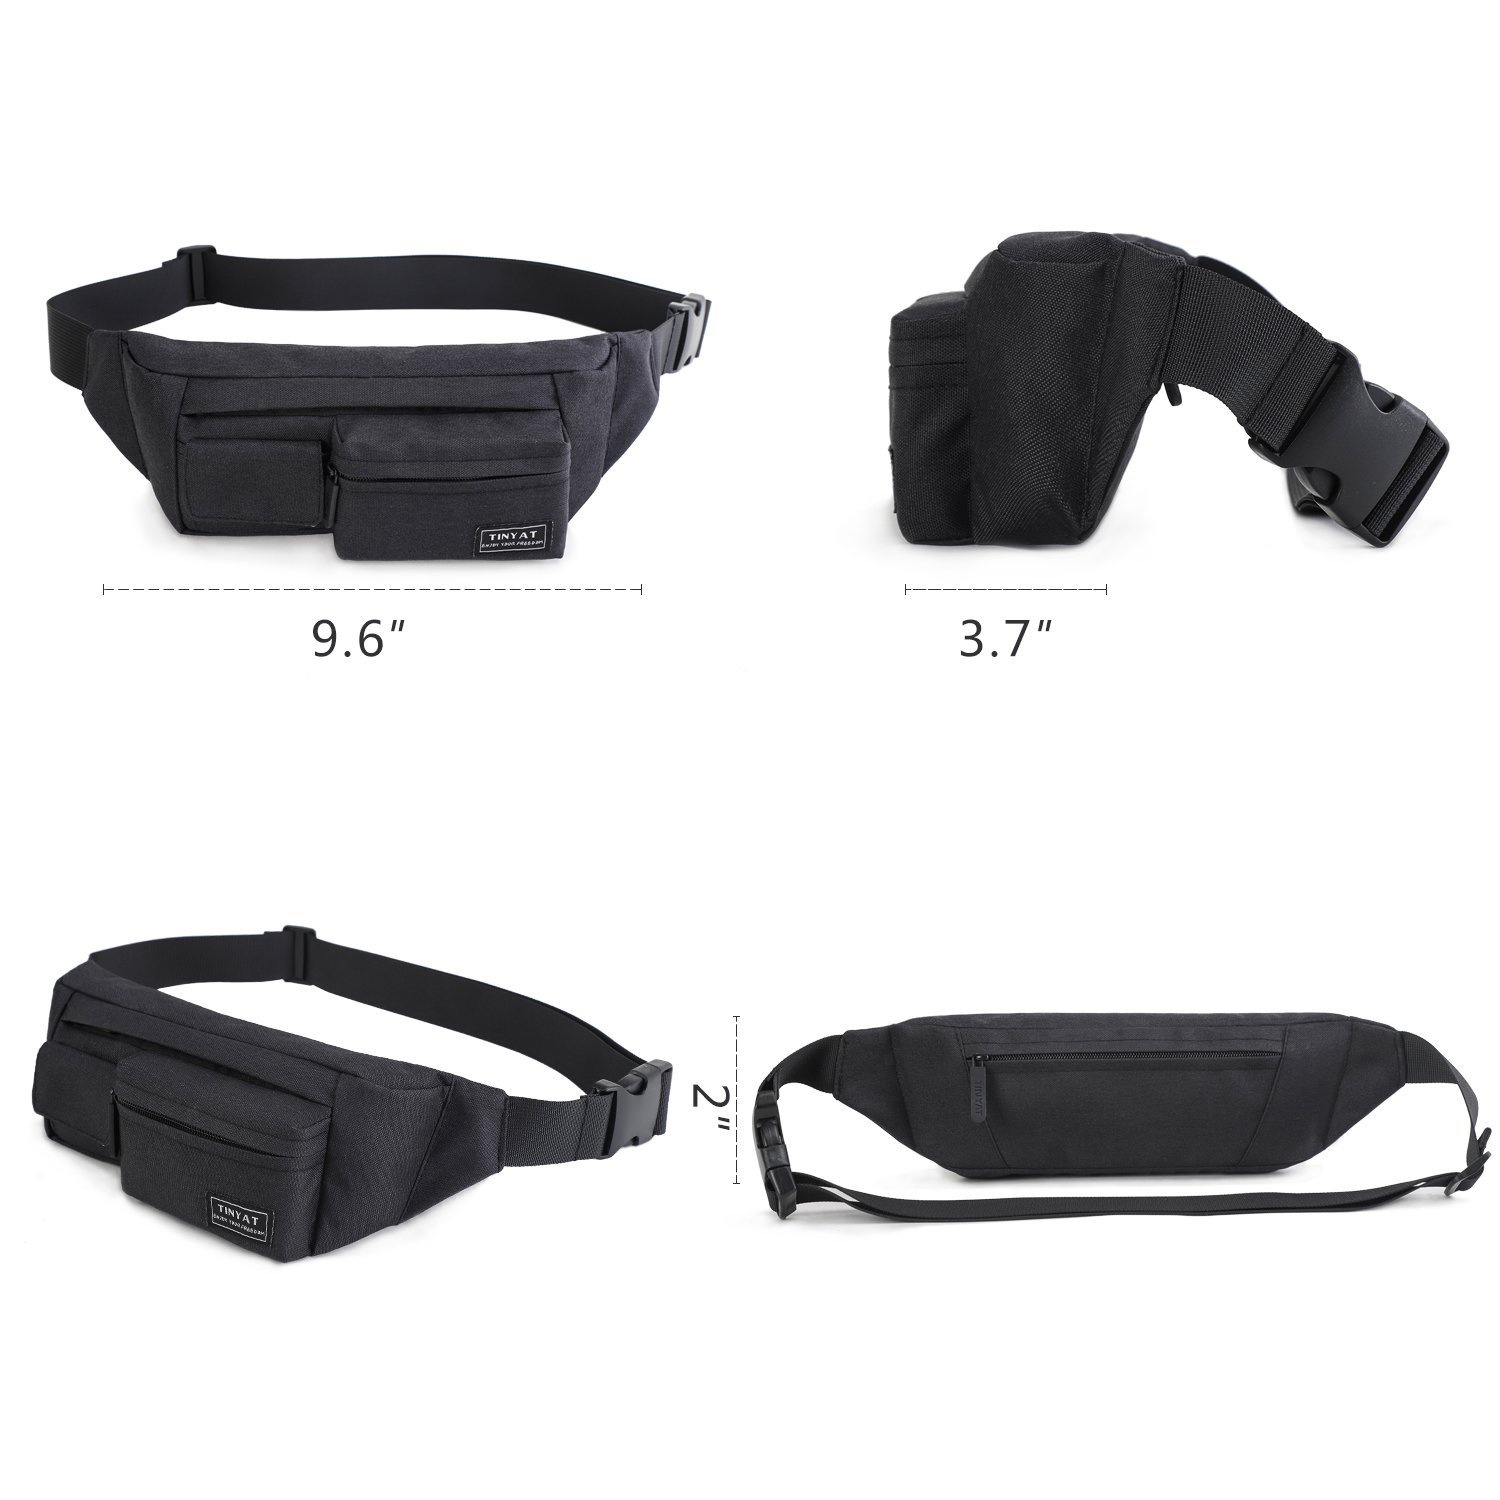 7330eb1762 Bum Bag Bags: Buy Online from Fishpond.co.nz